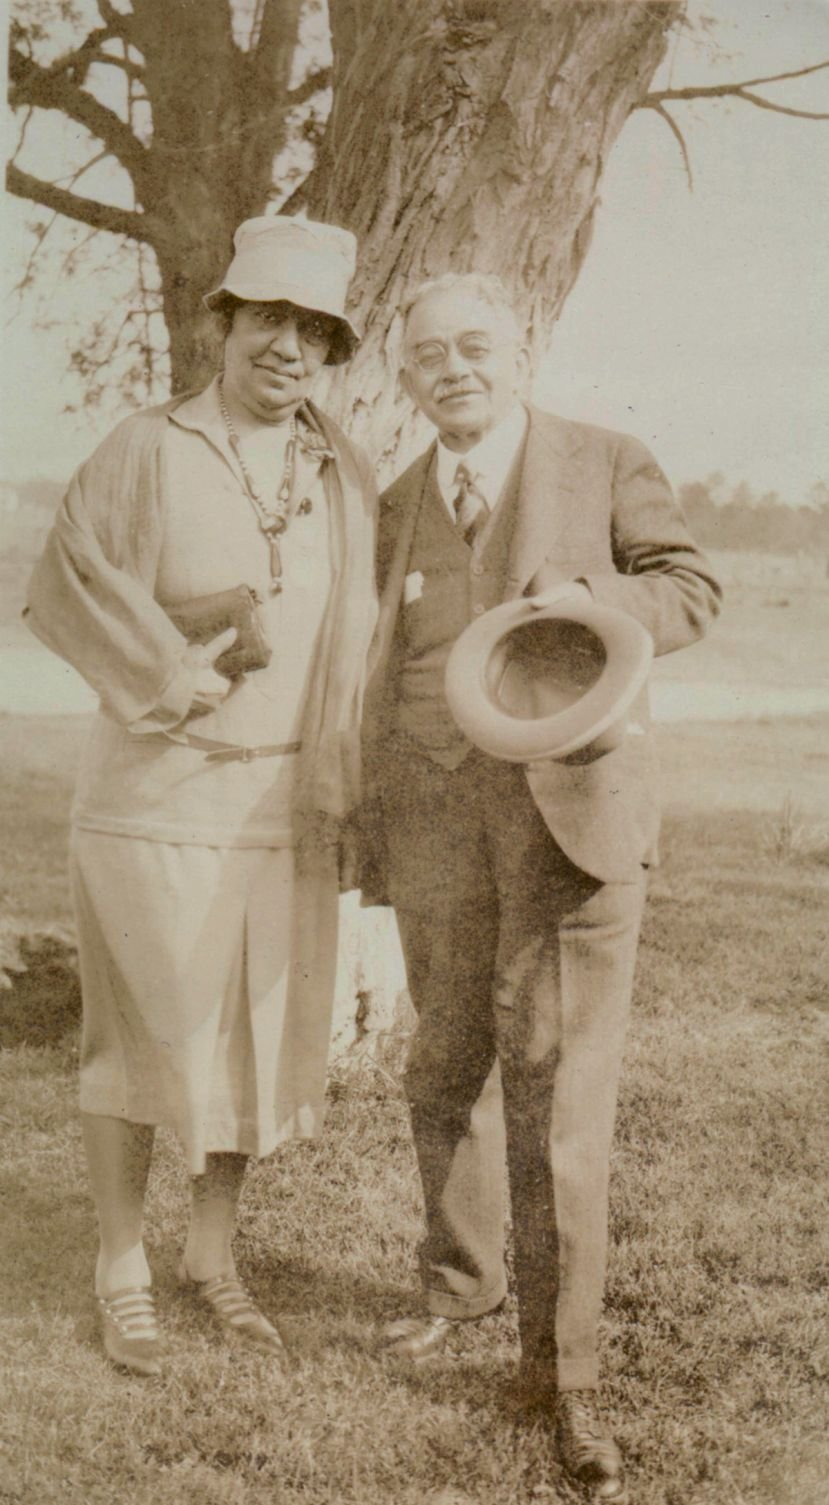 Coralie Cook with her husband, George William Cook